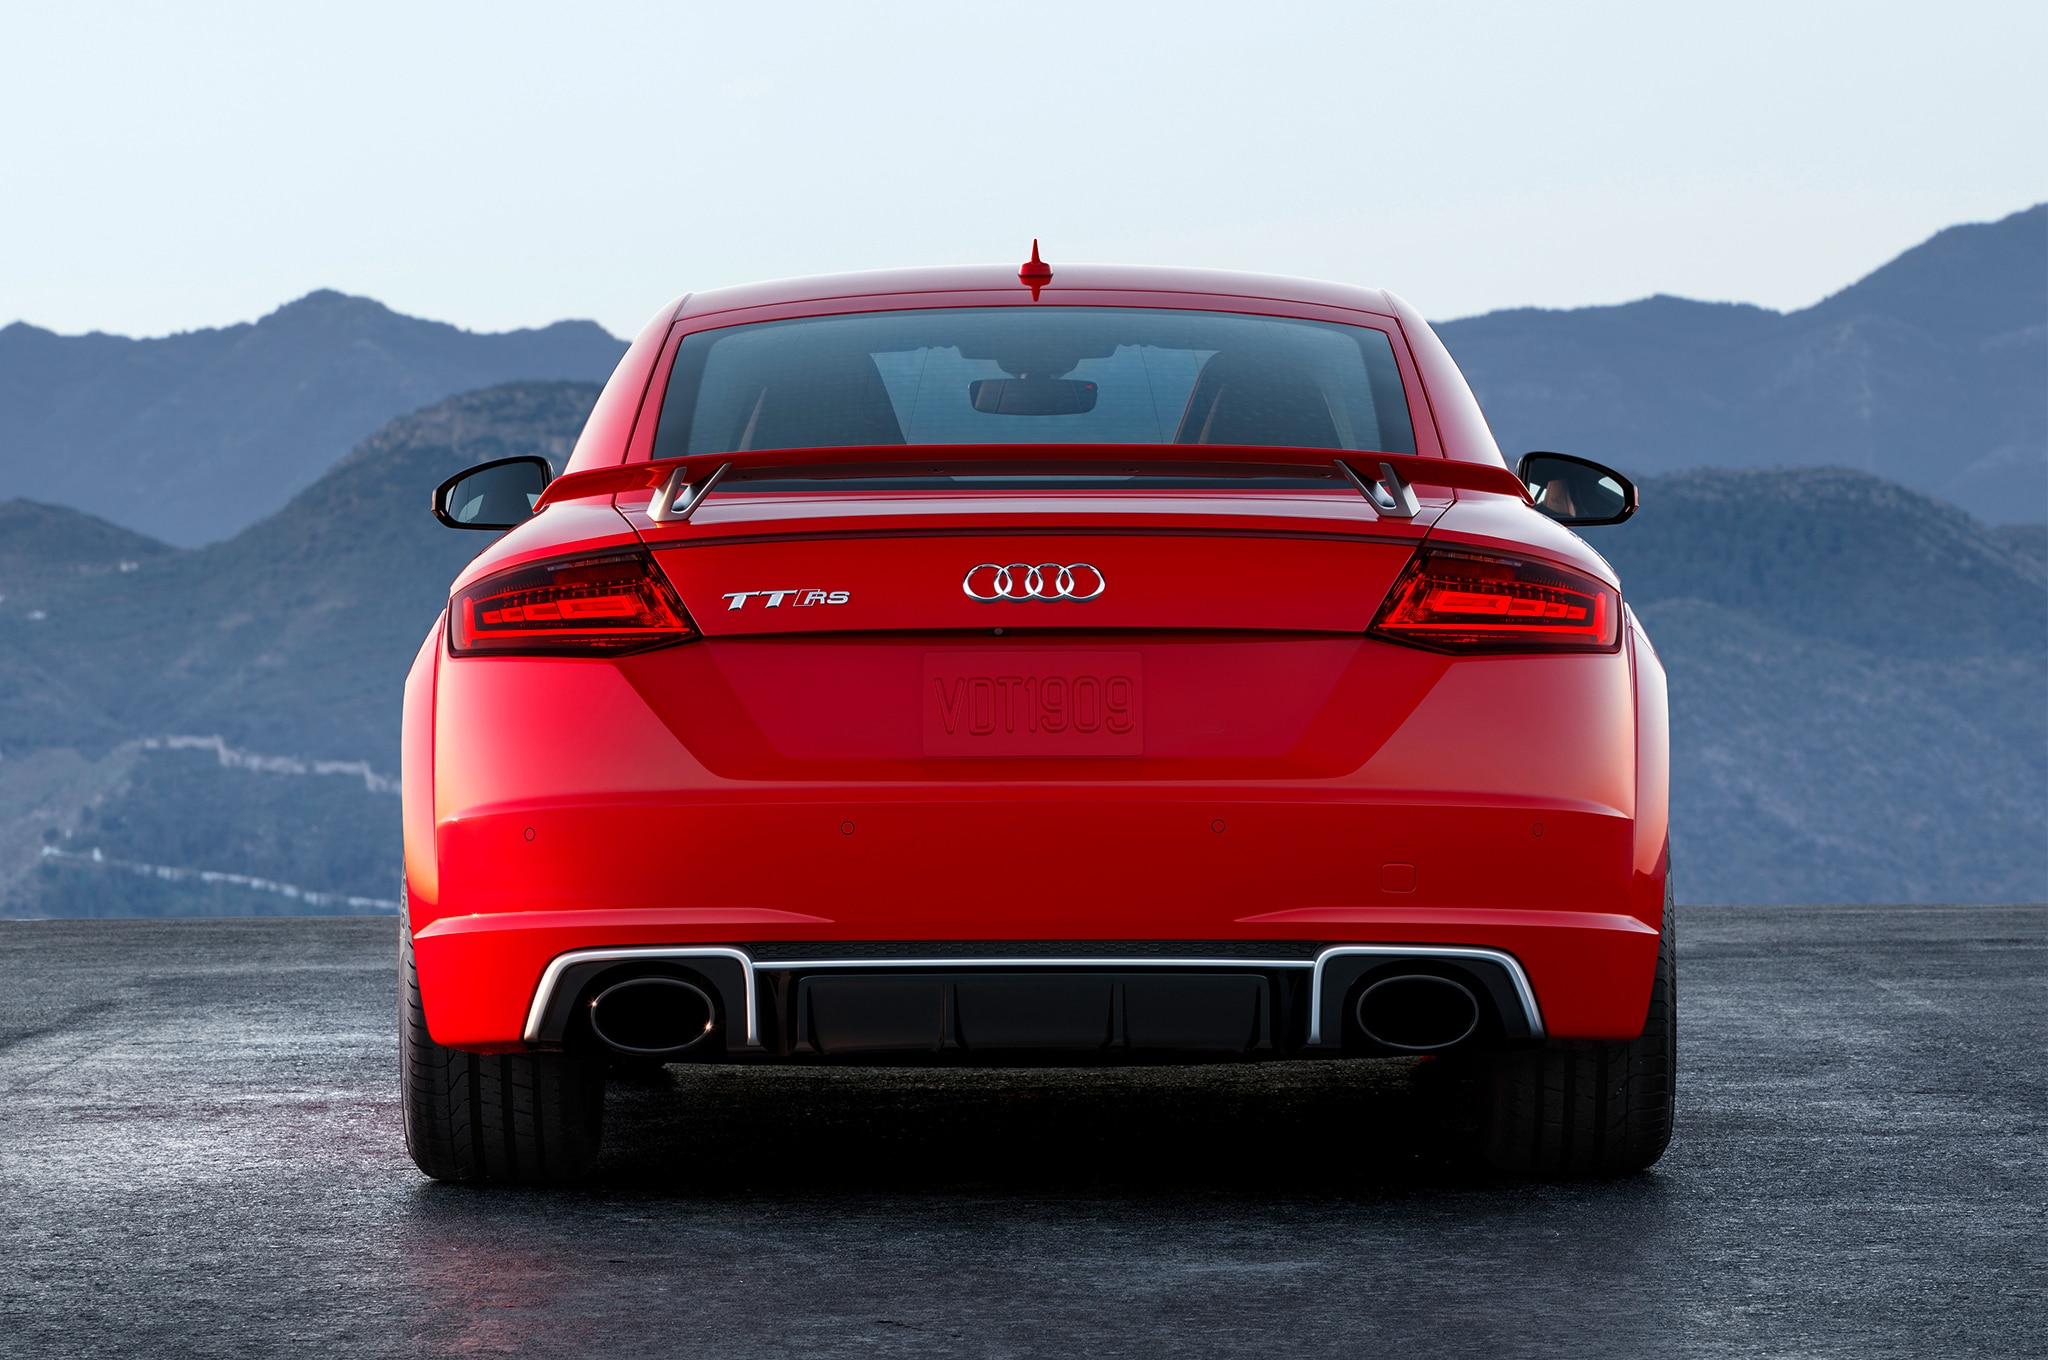 2018 Audi TT RS U.S. Spec First Drive Review | Automobile ...